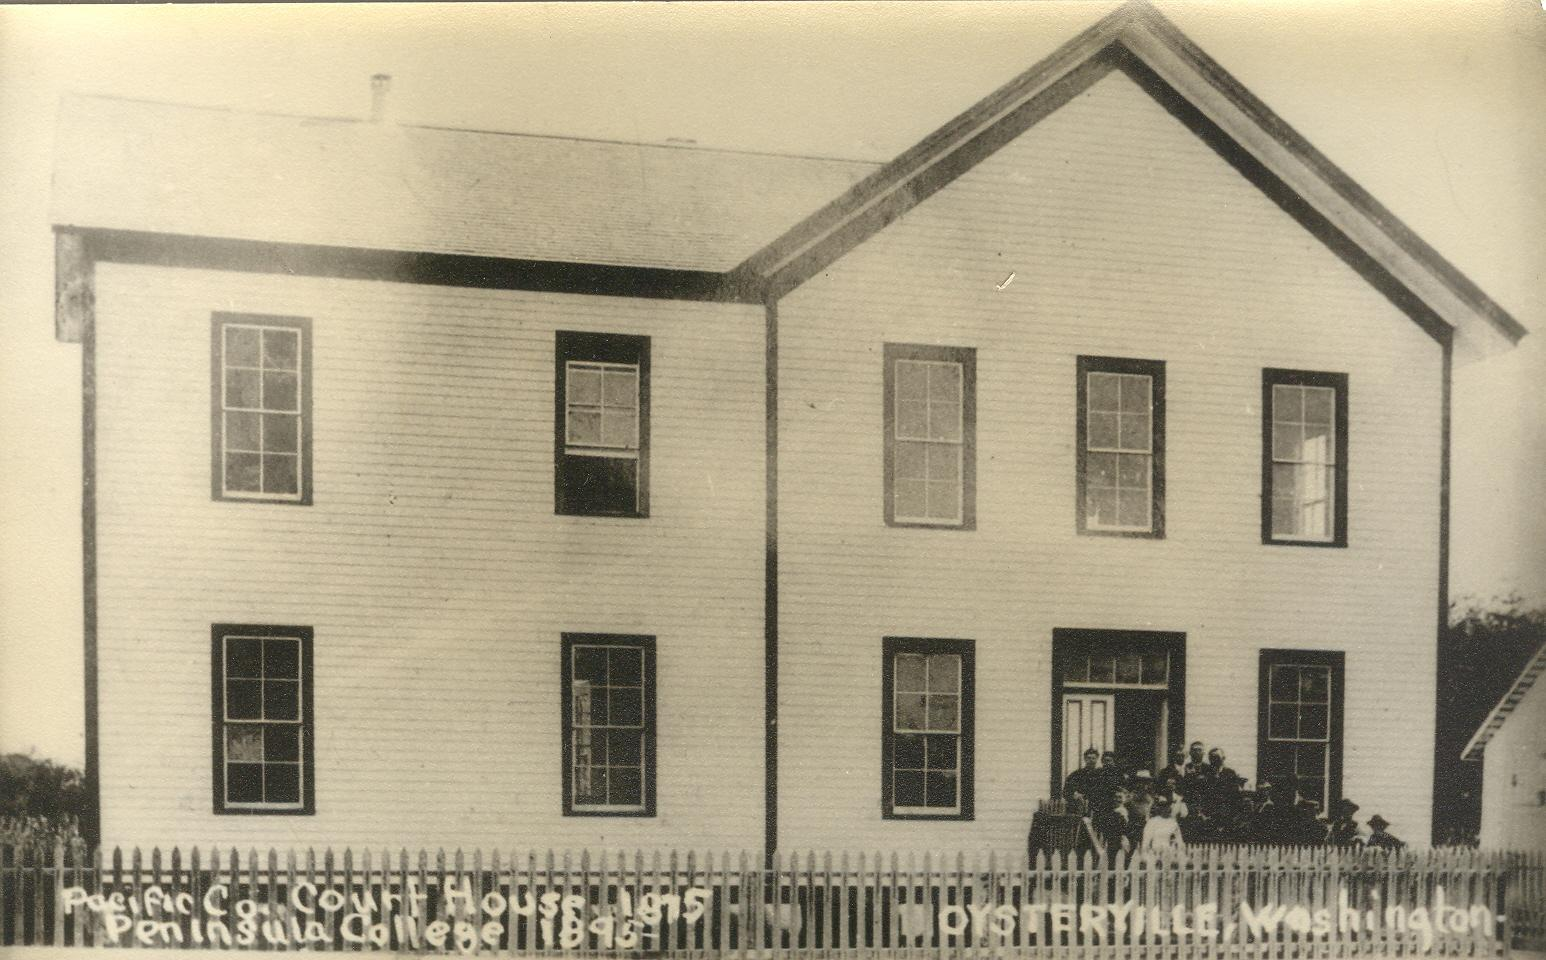 Pacific County Courthouse in Oysterville 1890